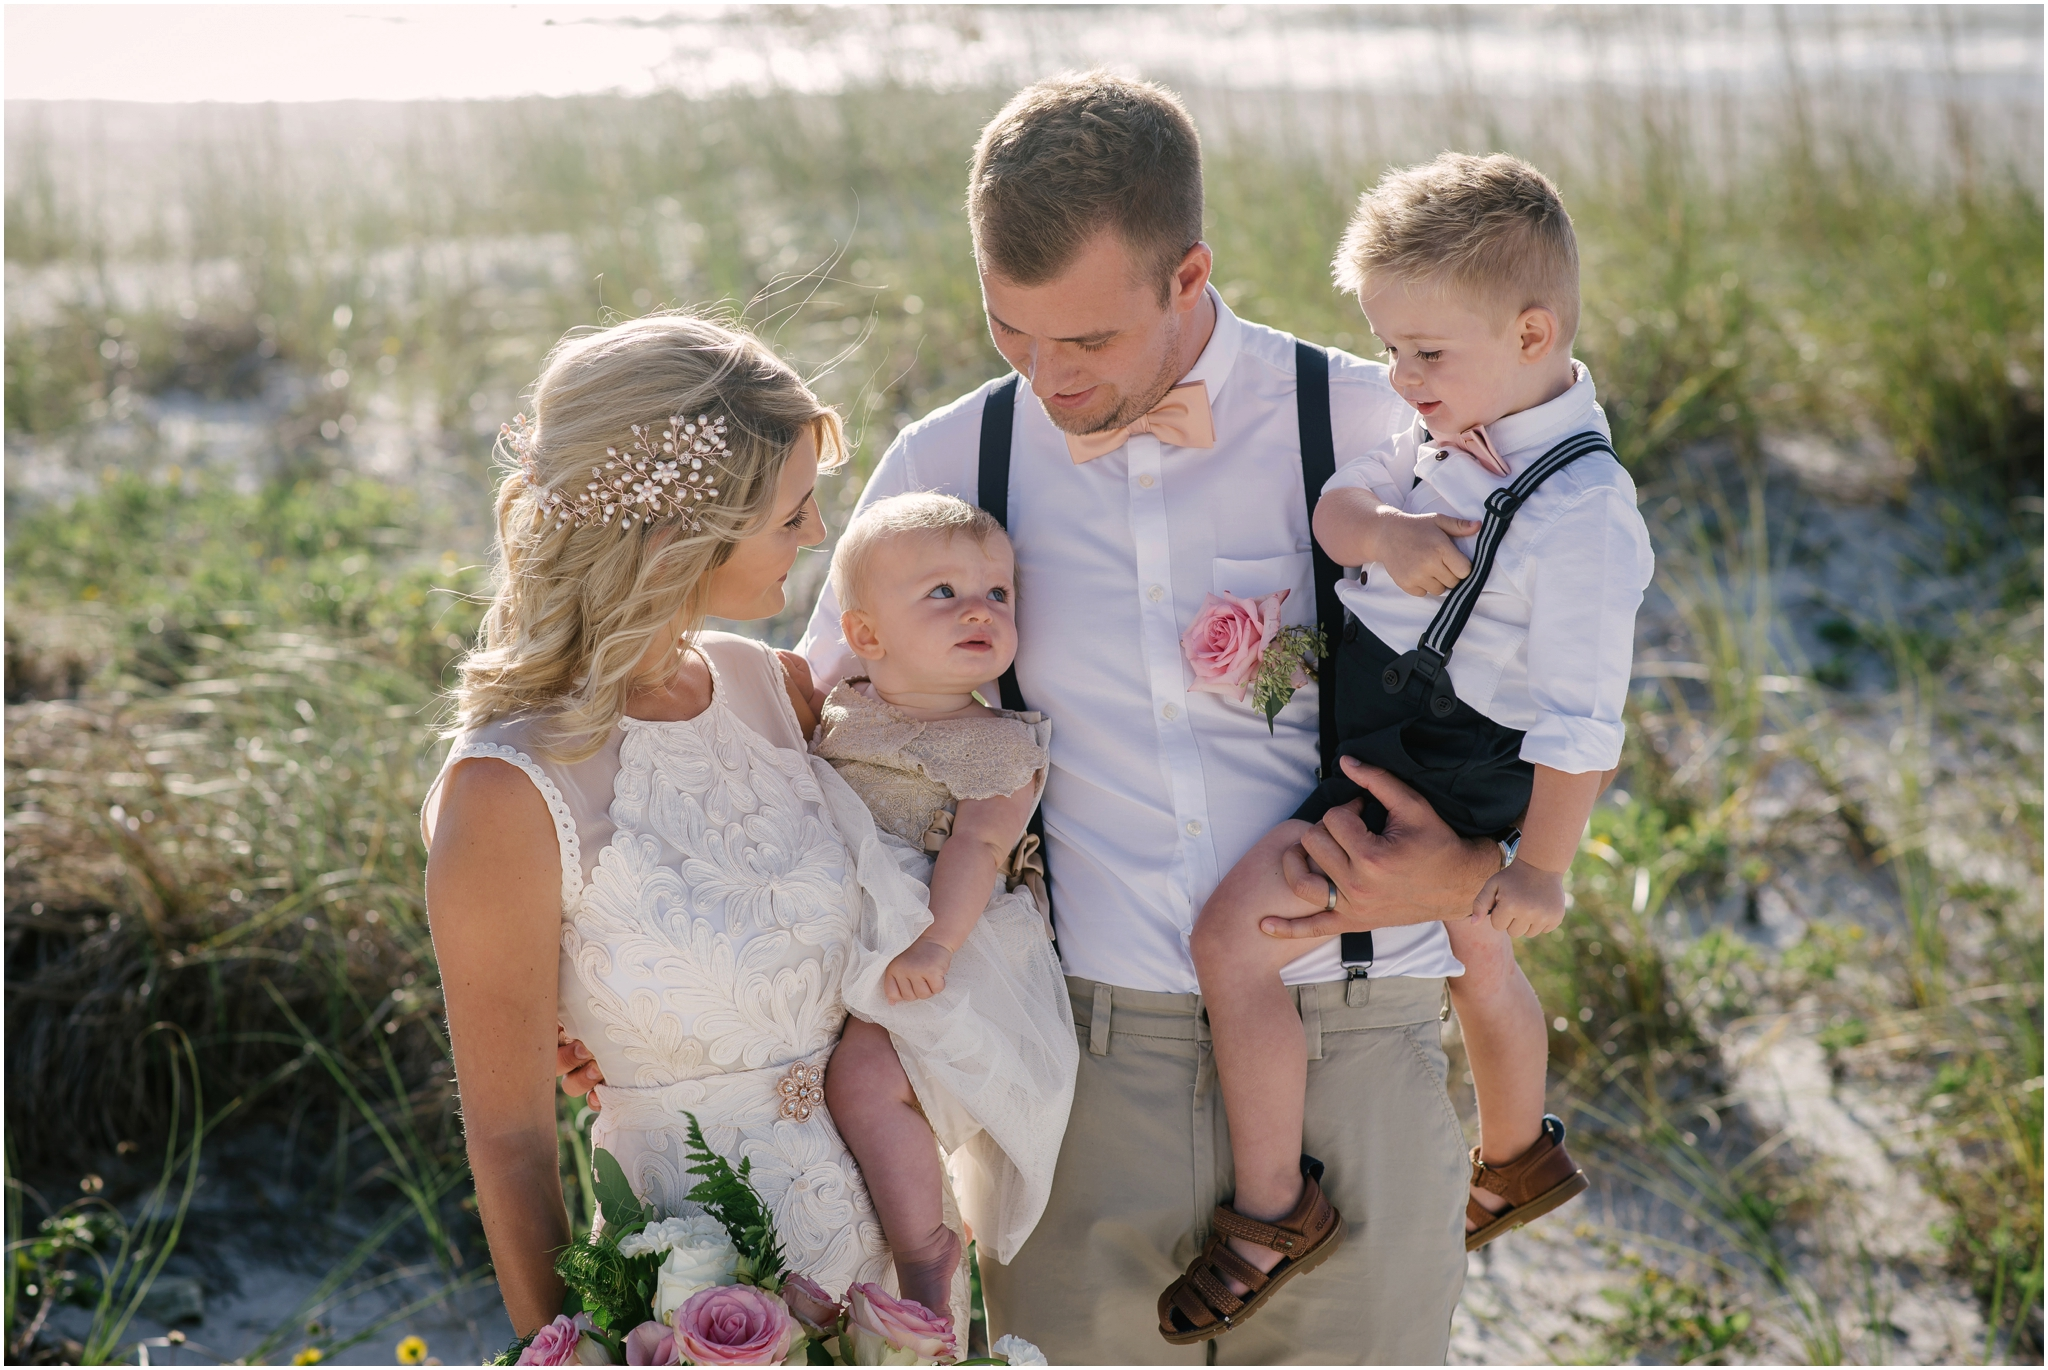 Destination Wedding Photography, Florida